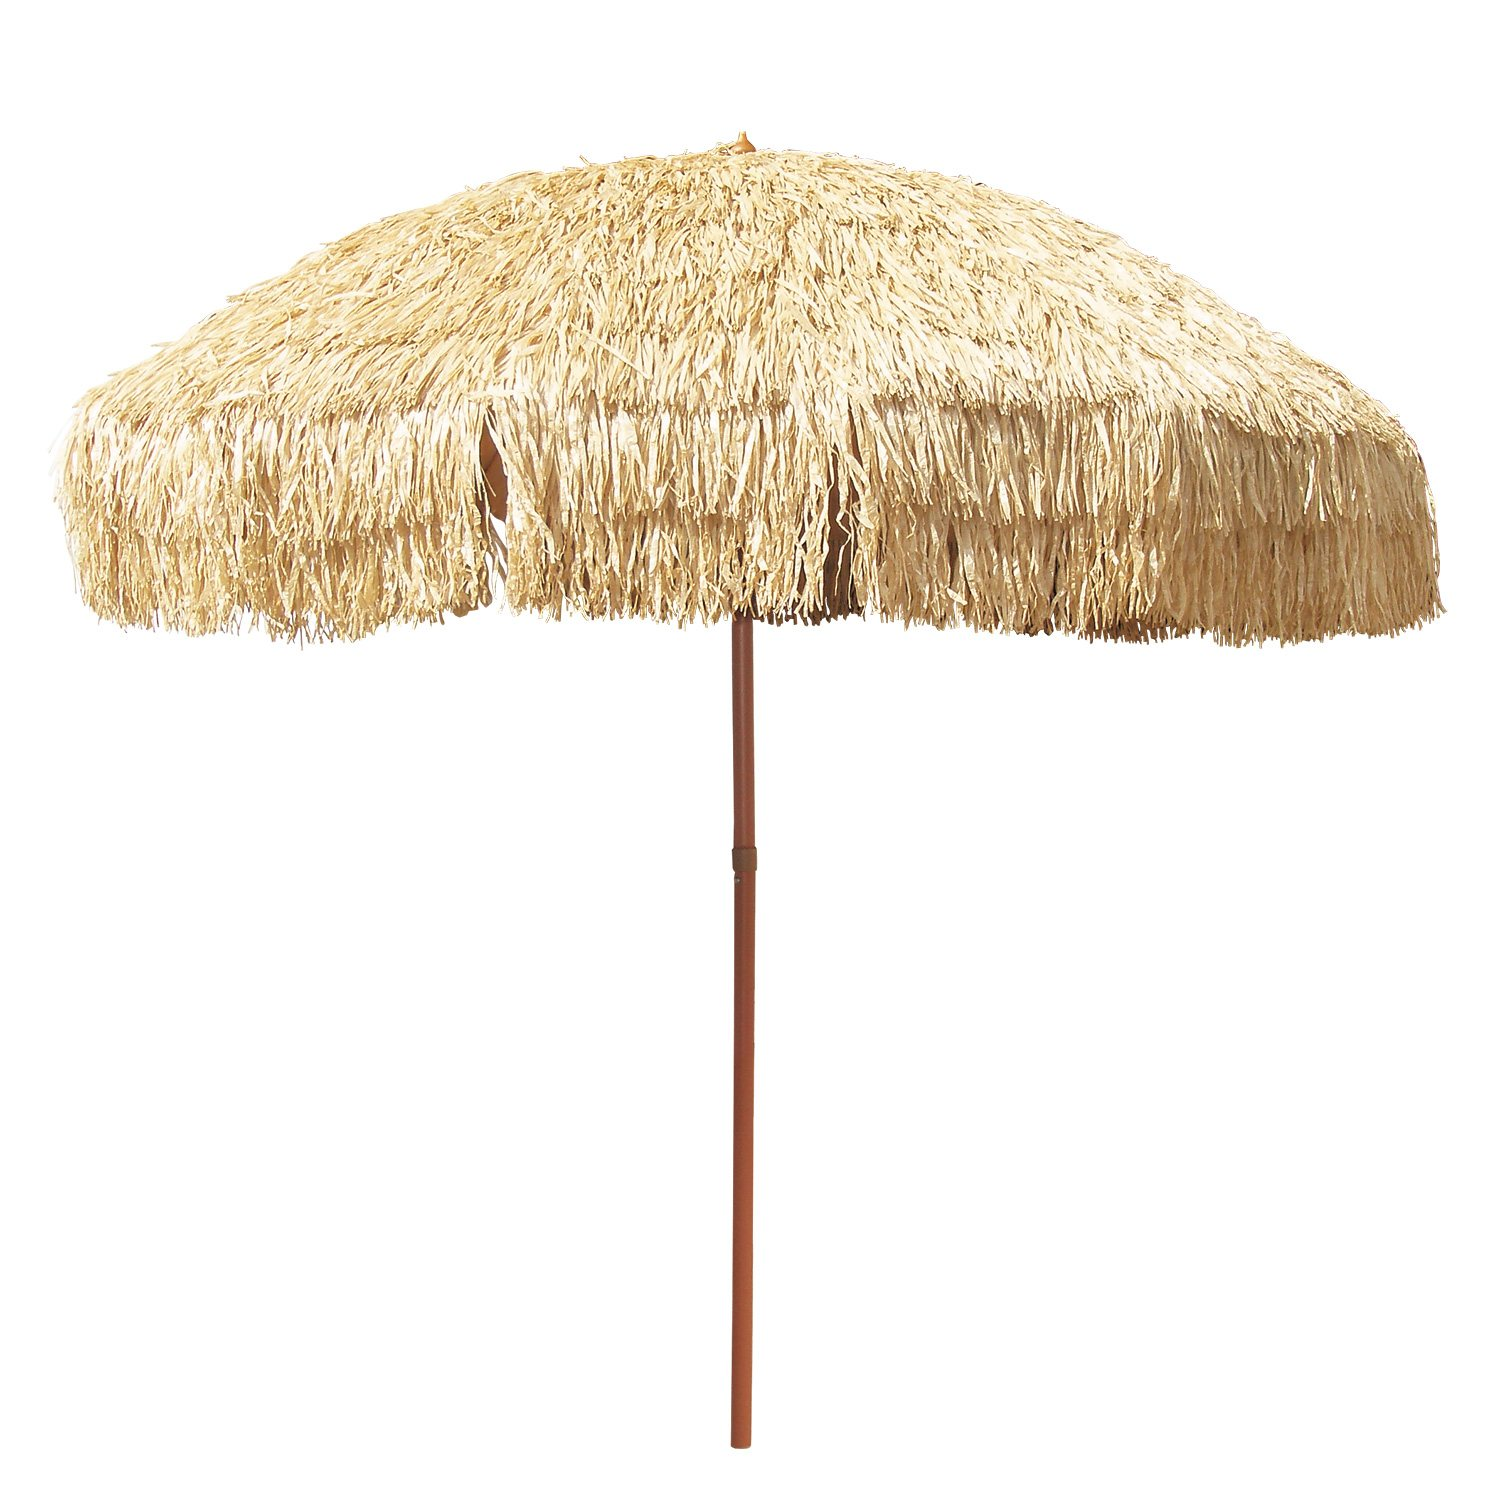 8 Hula Patio Umbrella Hawaii Style Umbrella for Pool